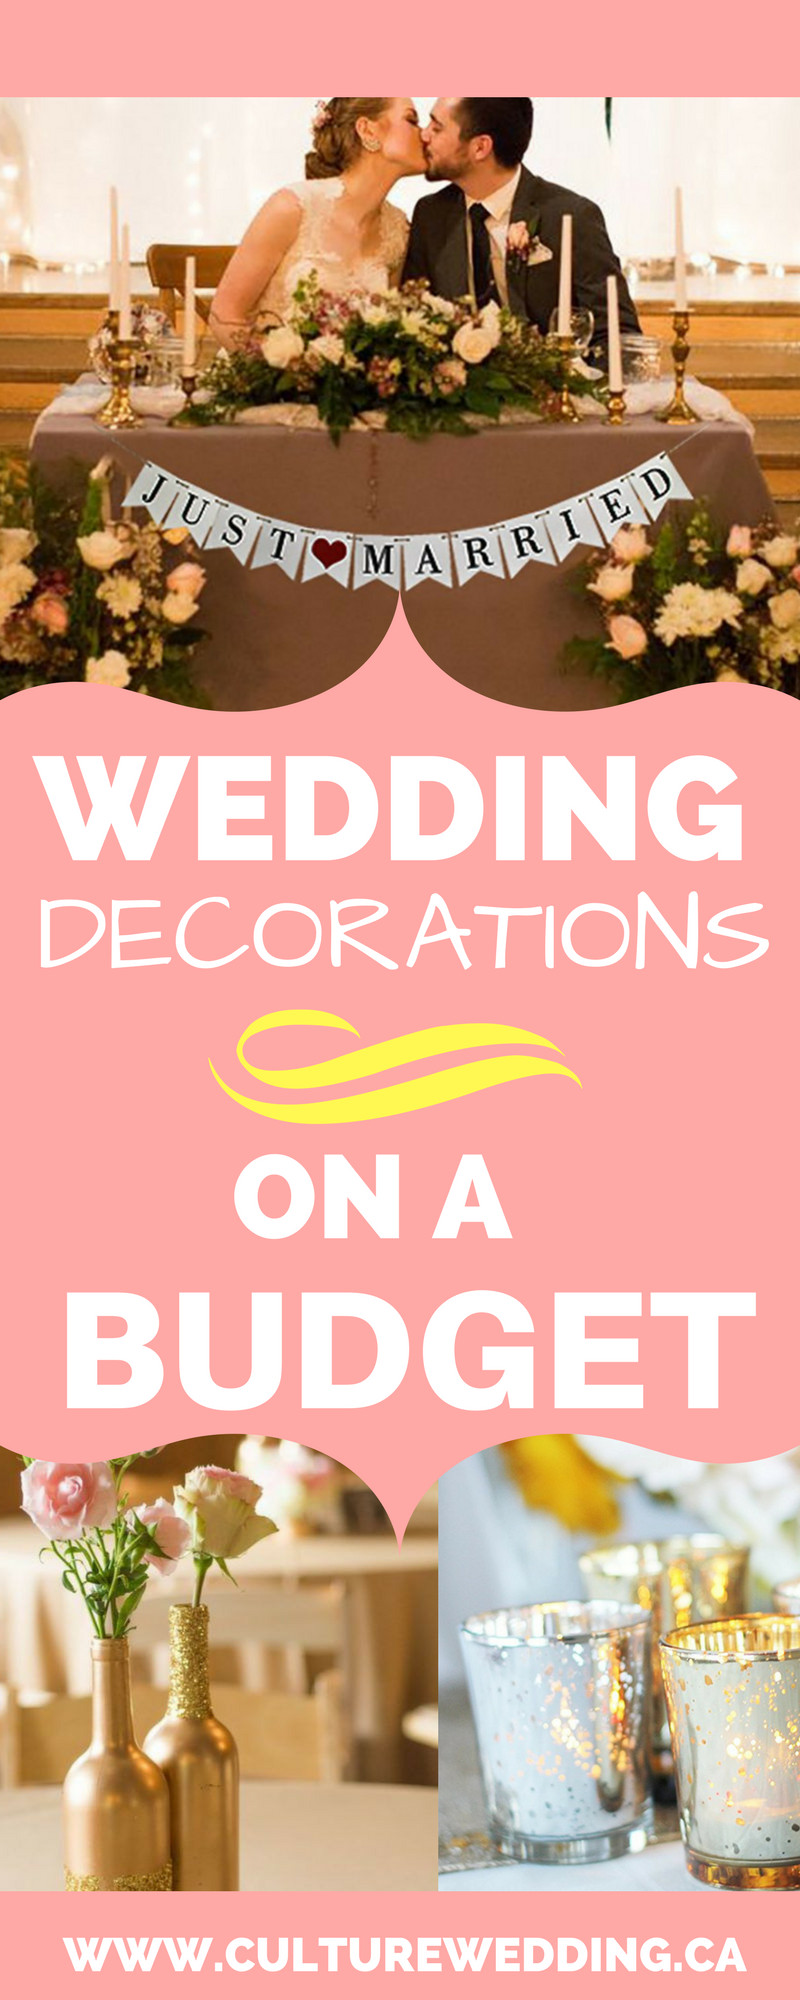 DIY Wedding Decorations On A Budget  How to Wedding Decorations on a Bud Get them now